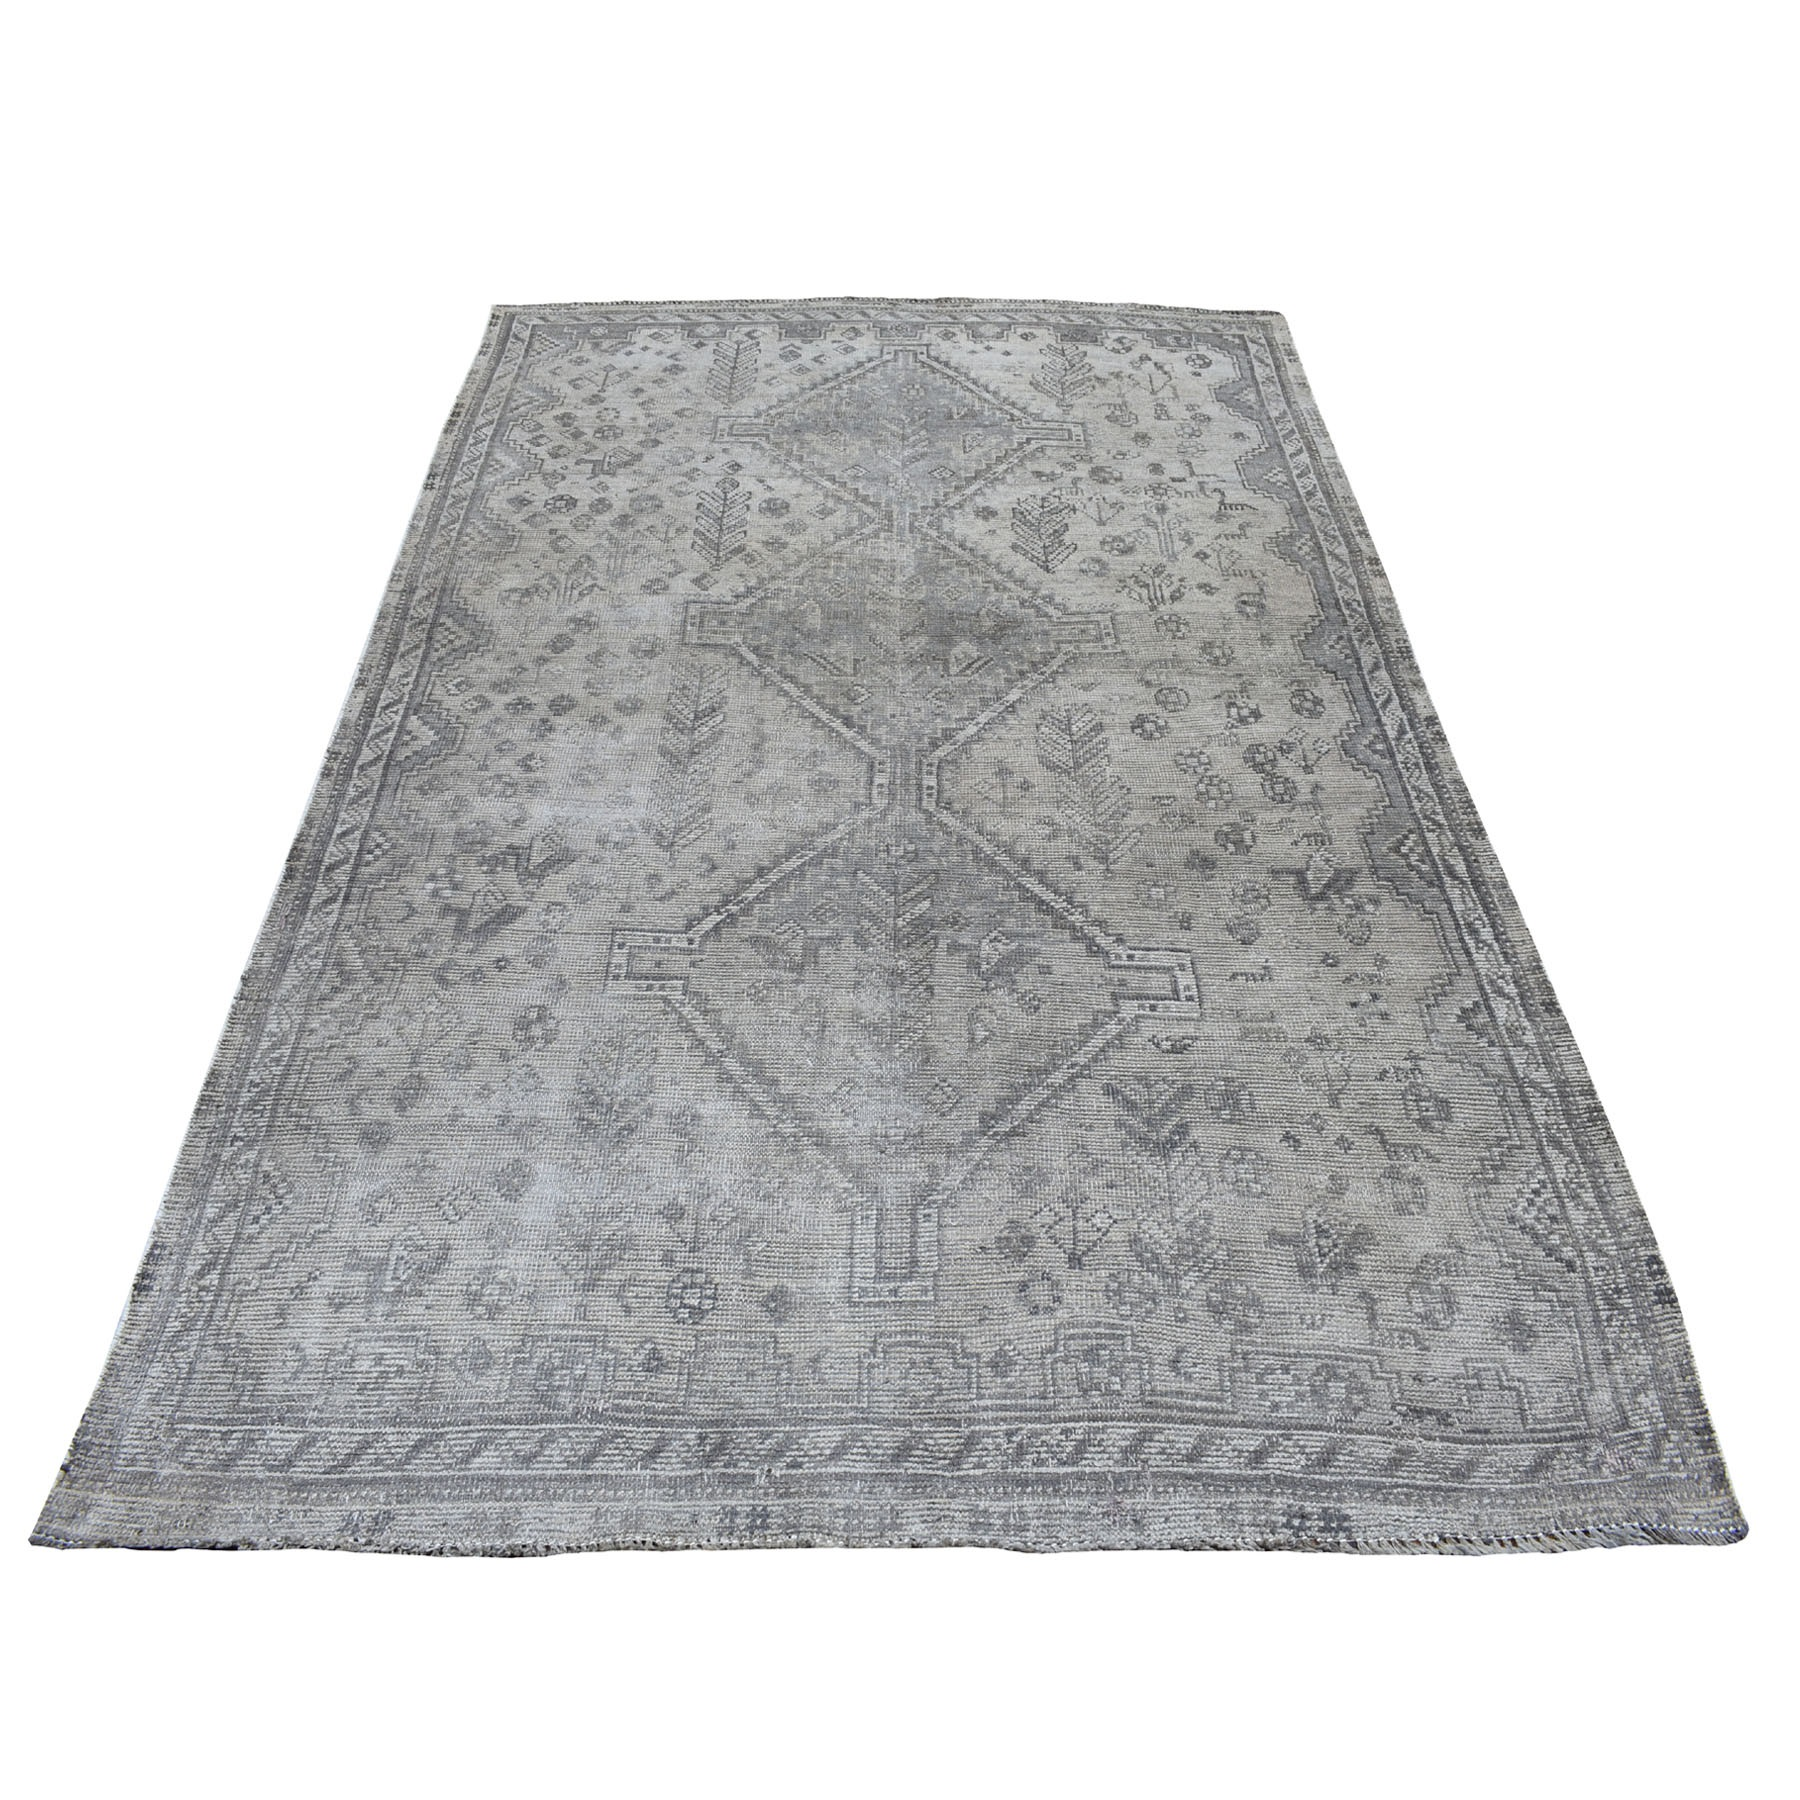 5'X8' Vintage And Worn Down Distressed Colors Persian Qashqai Hand Knotted Bohemian Rug moaed0e8